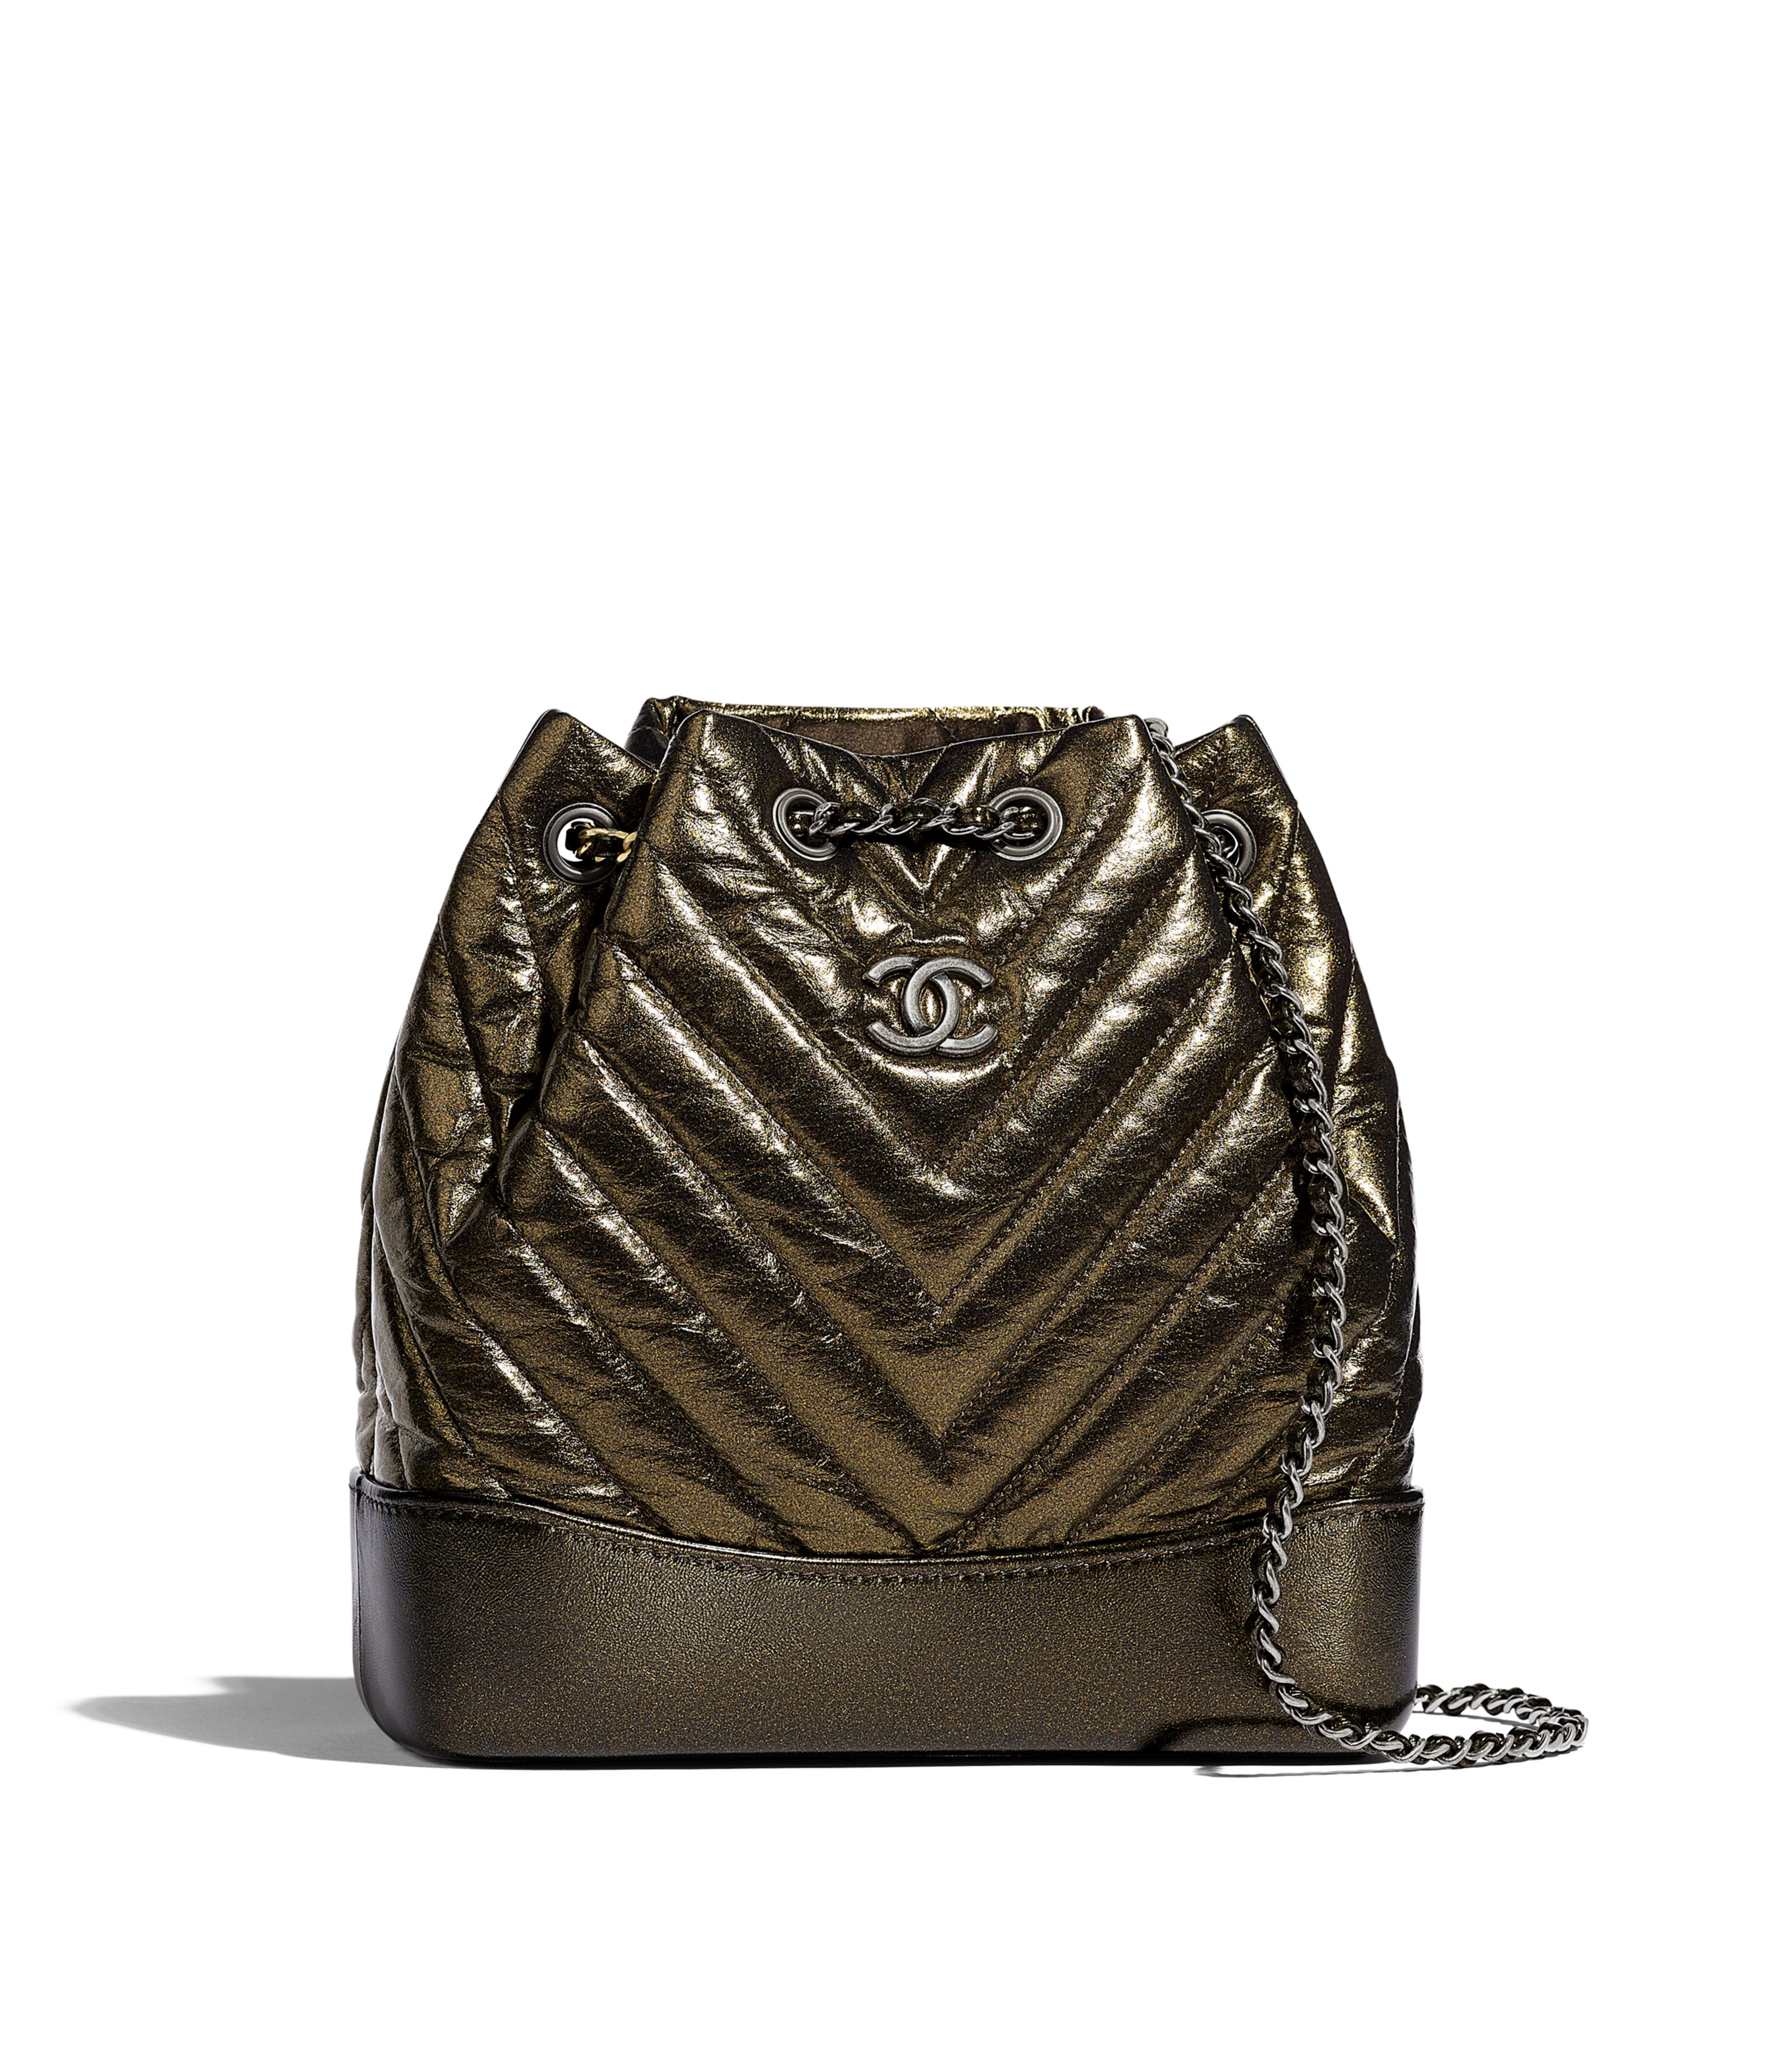 45ef81e083b3 CHANEL'S GABRIELLE Small Backpack Aged Calfskin, Silver-Tone & Gold-Tone  Metal, Gold Ref. A94485B00877N4779